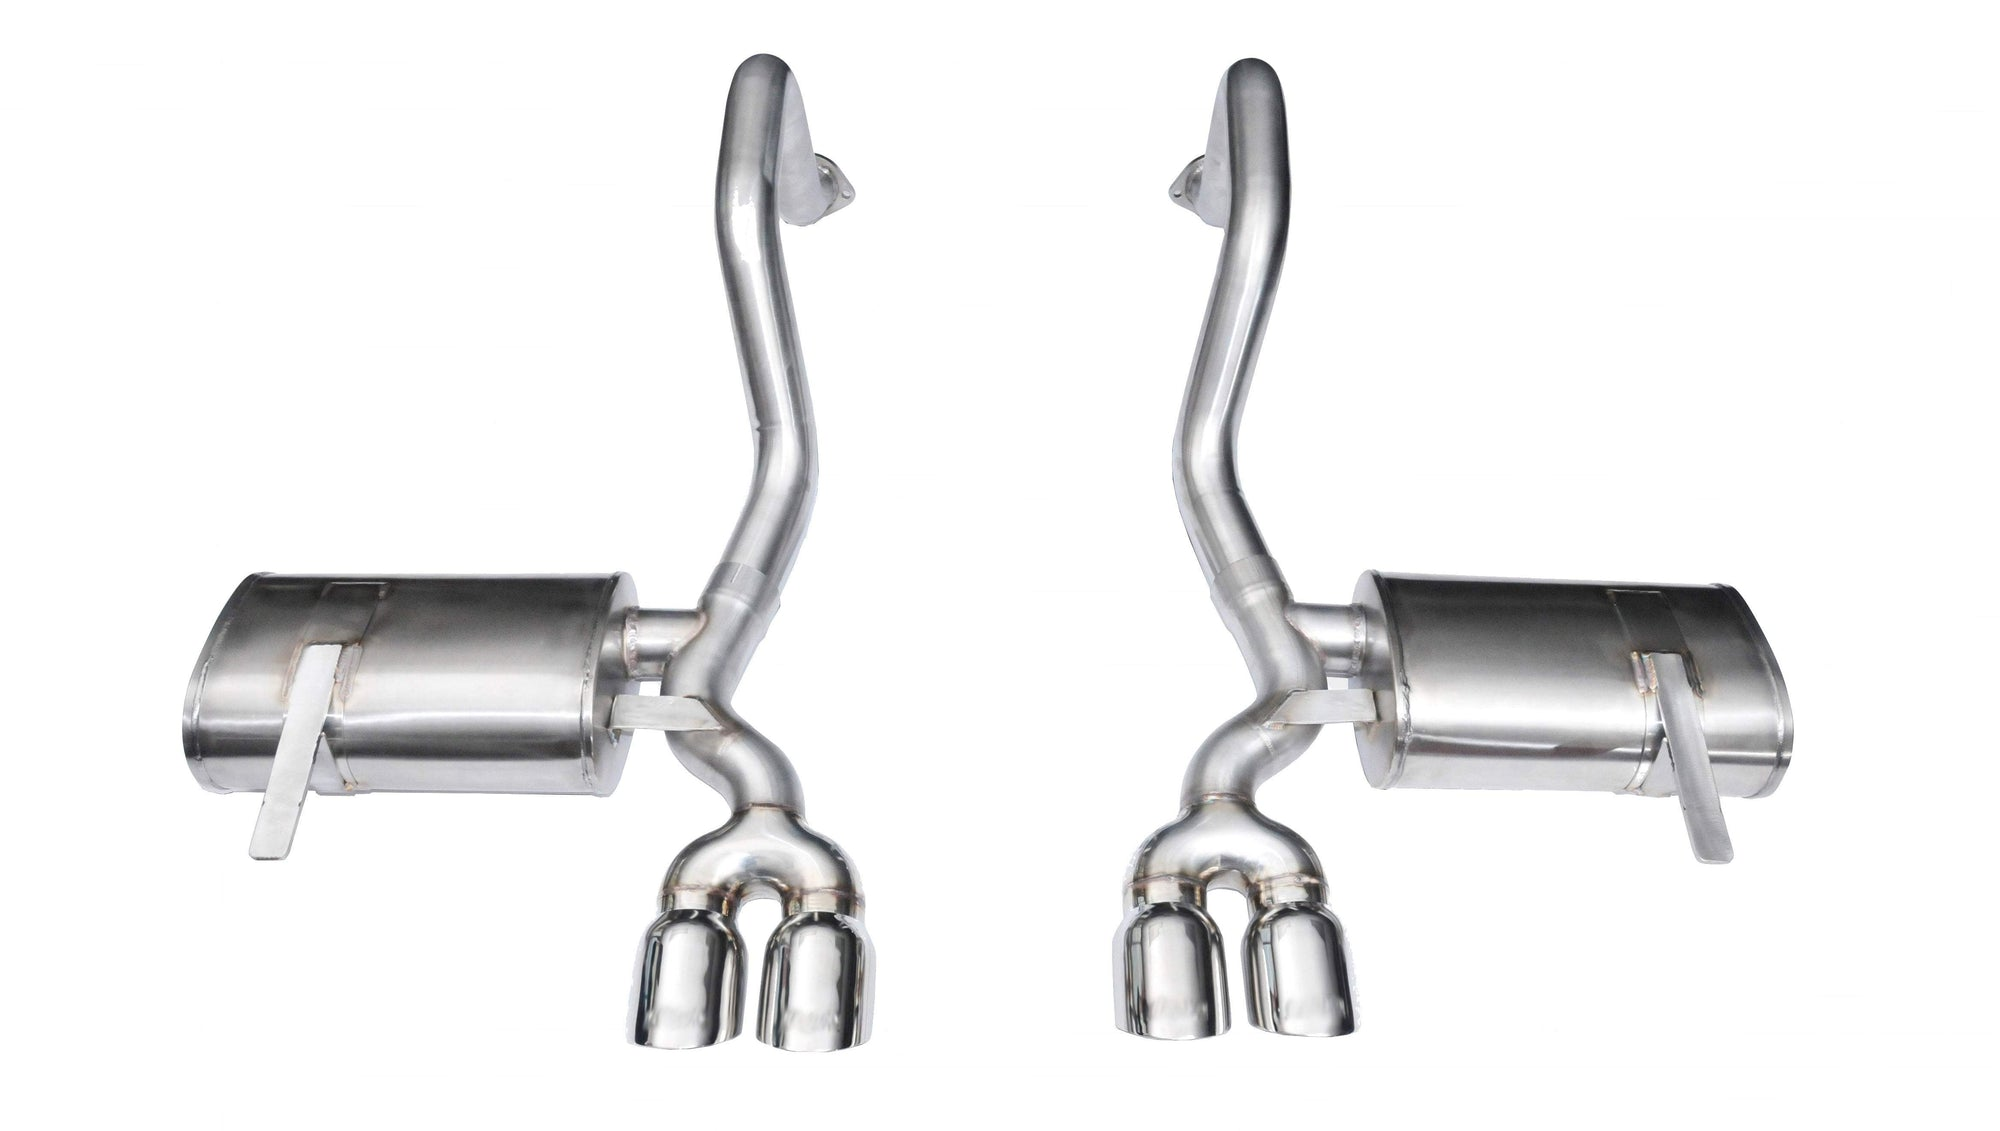 "CORSA PERFORMANCE Axle-Back Exhaust Polished / Xtreme / Dual Rear - Twin 3.5in 1997-2004 Chevrolet Corvette C5/ C5 Z06 5.7L V8, 2.5"" Axle-Back Exhaust System with Twin 3.5"" Tips (14132) Xtreme Sound Level"